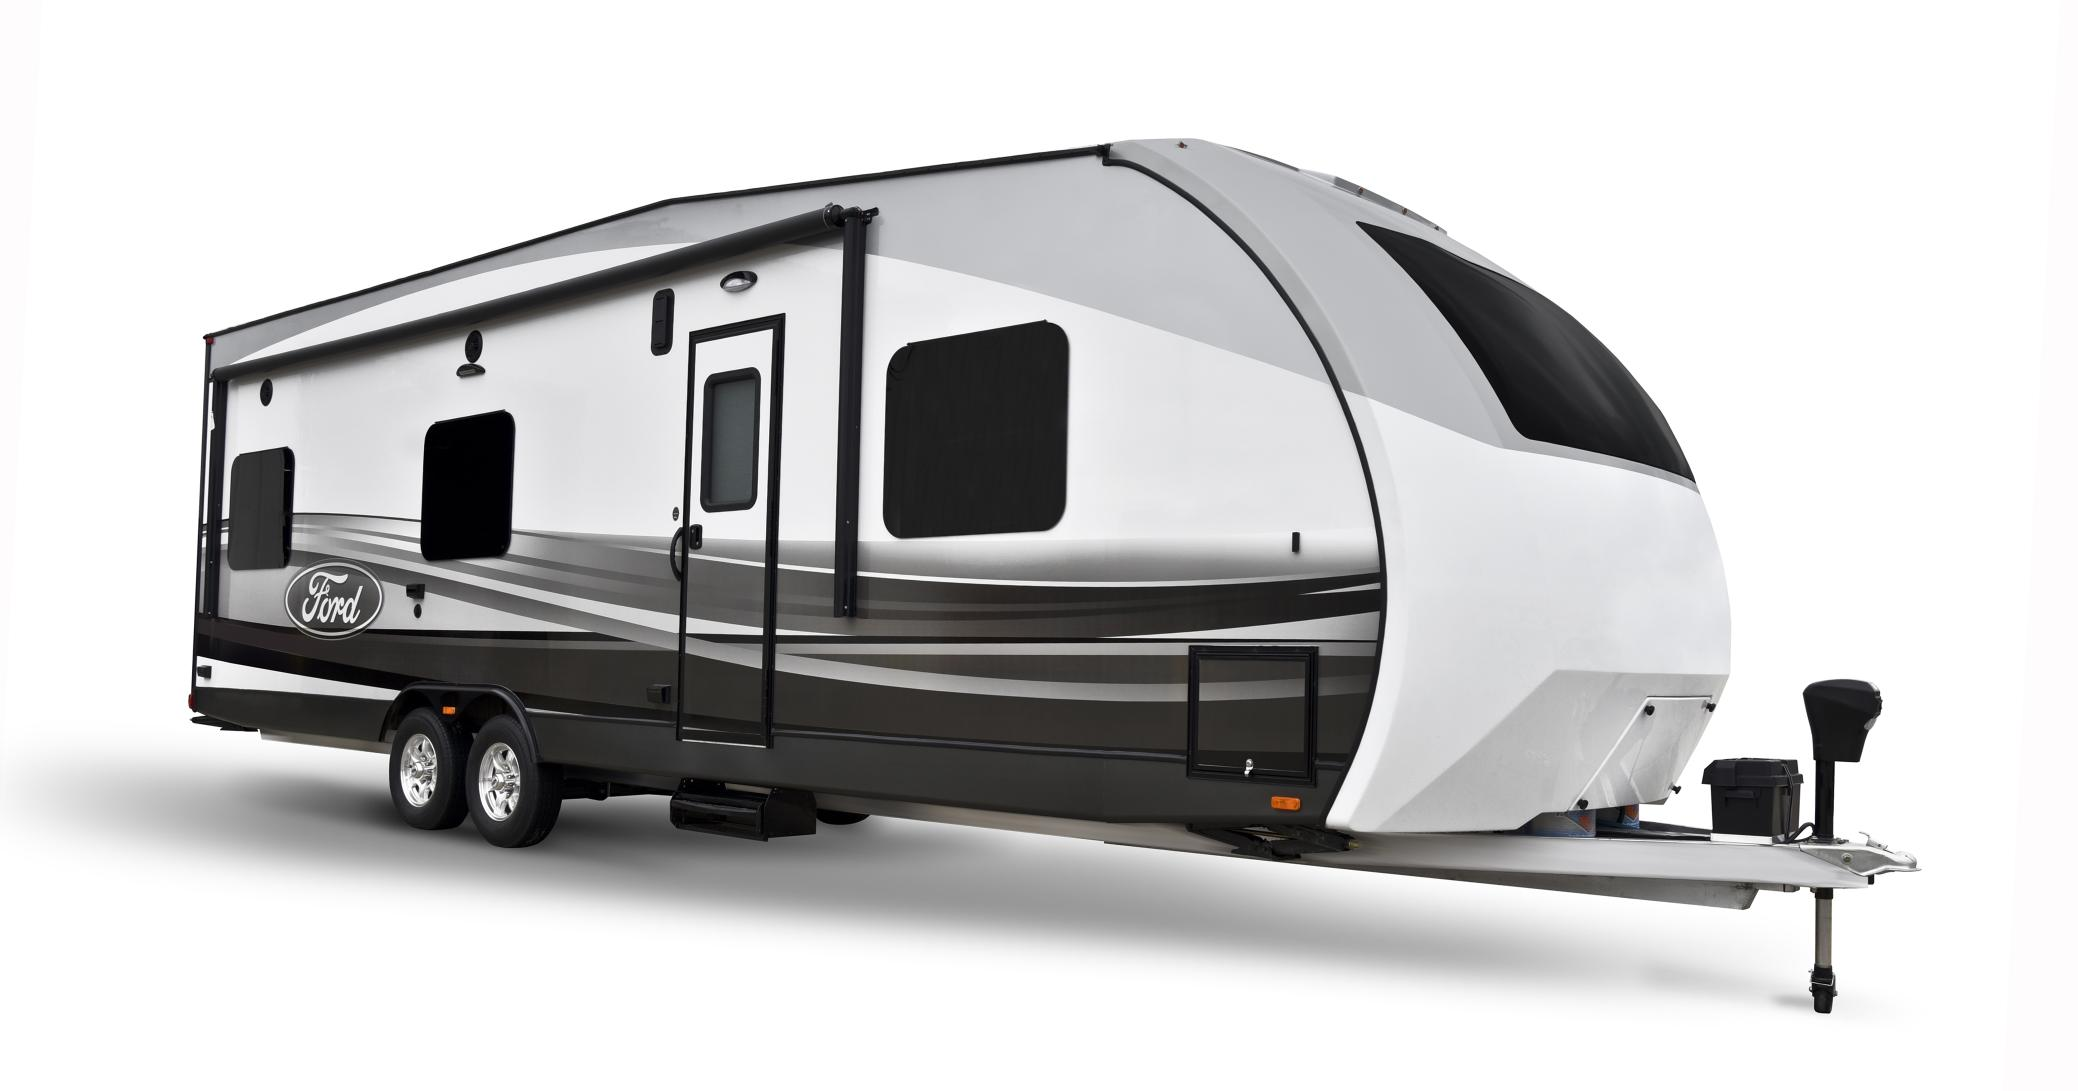 Ford Boldly Goes Where No OEM Has Gone Before the RV Market